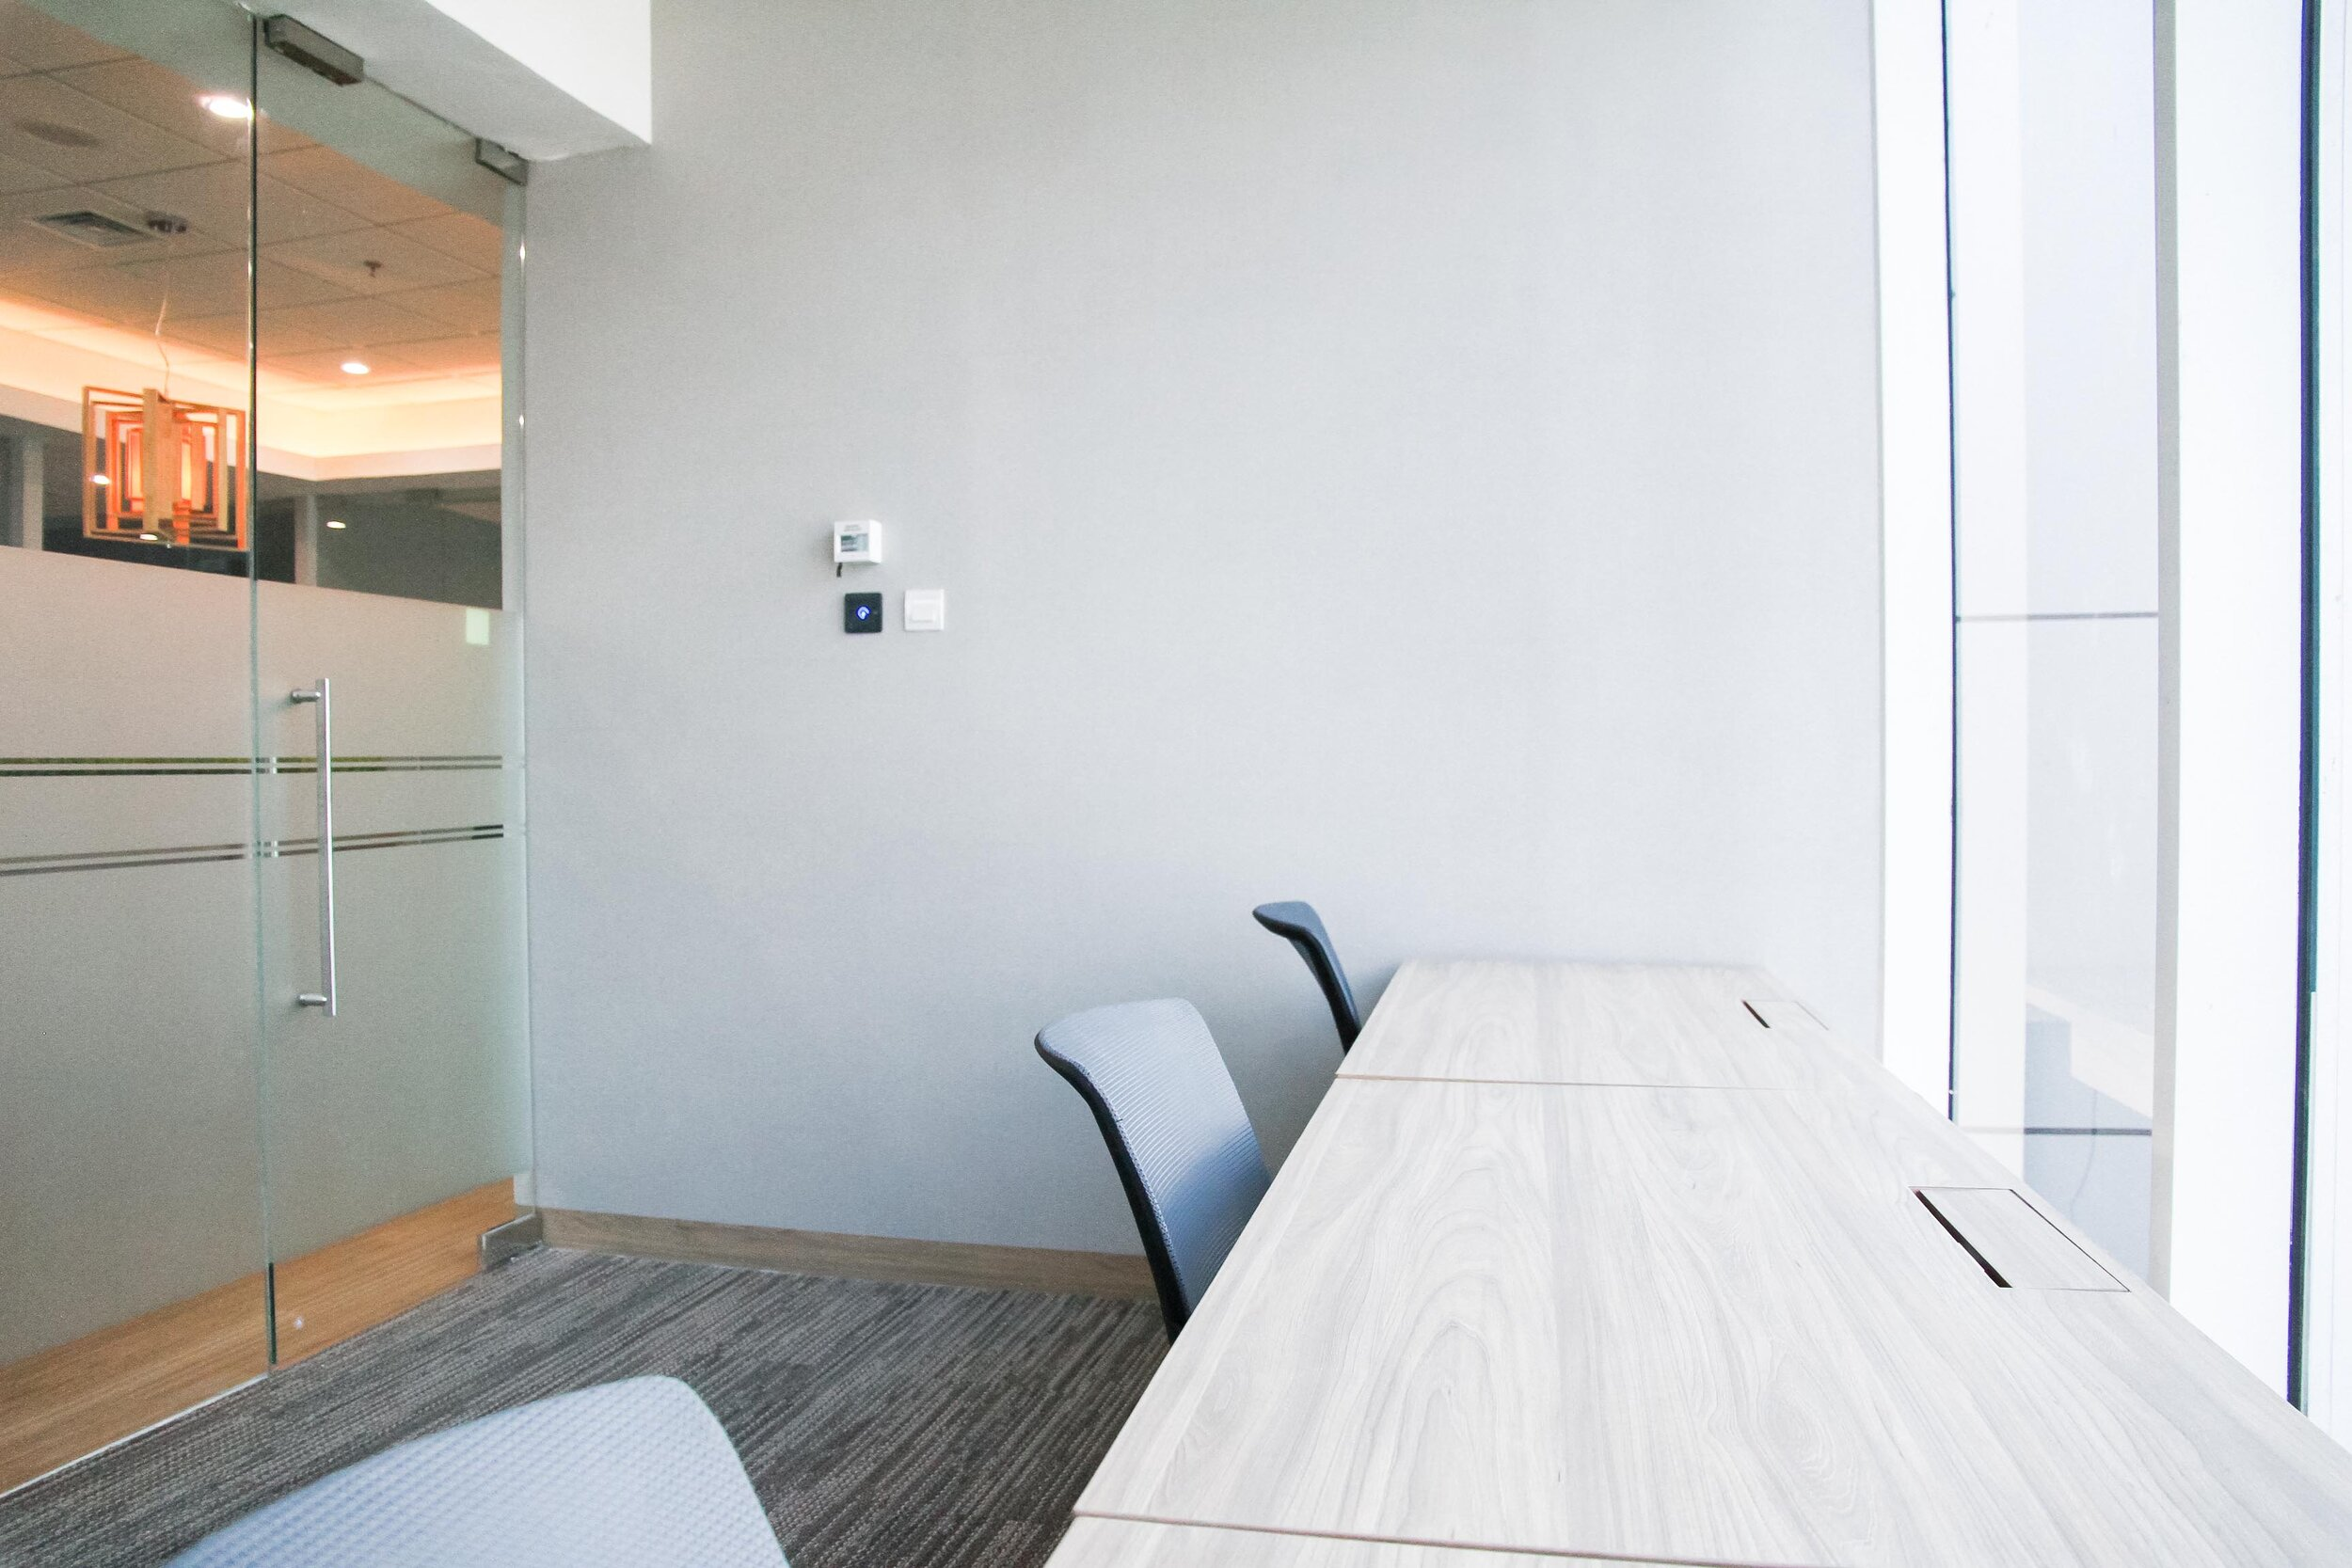 we have a variety of private office, coworking space, and virtual office plans to cater to your business needs (photo credits: avenue8 offices)